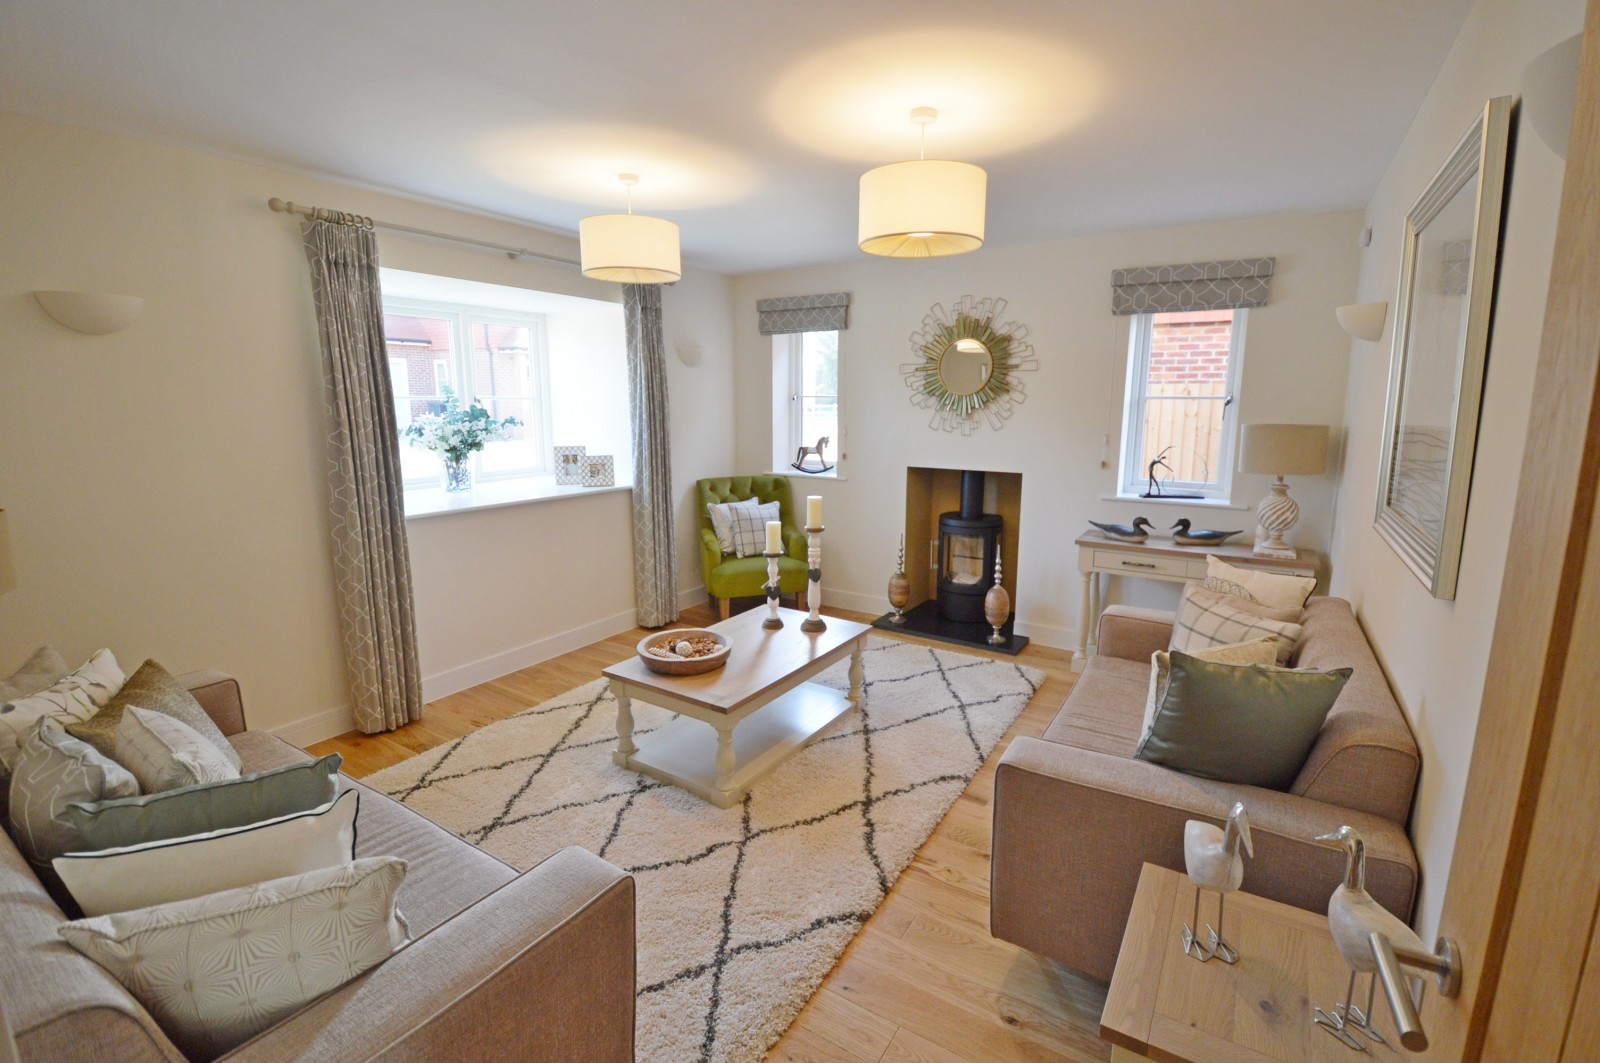 Lounge Property to let in Ropley